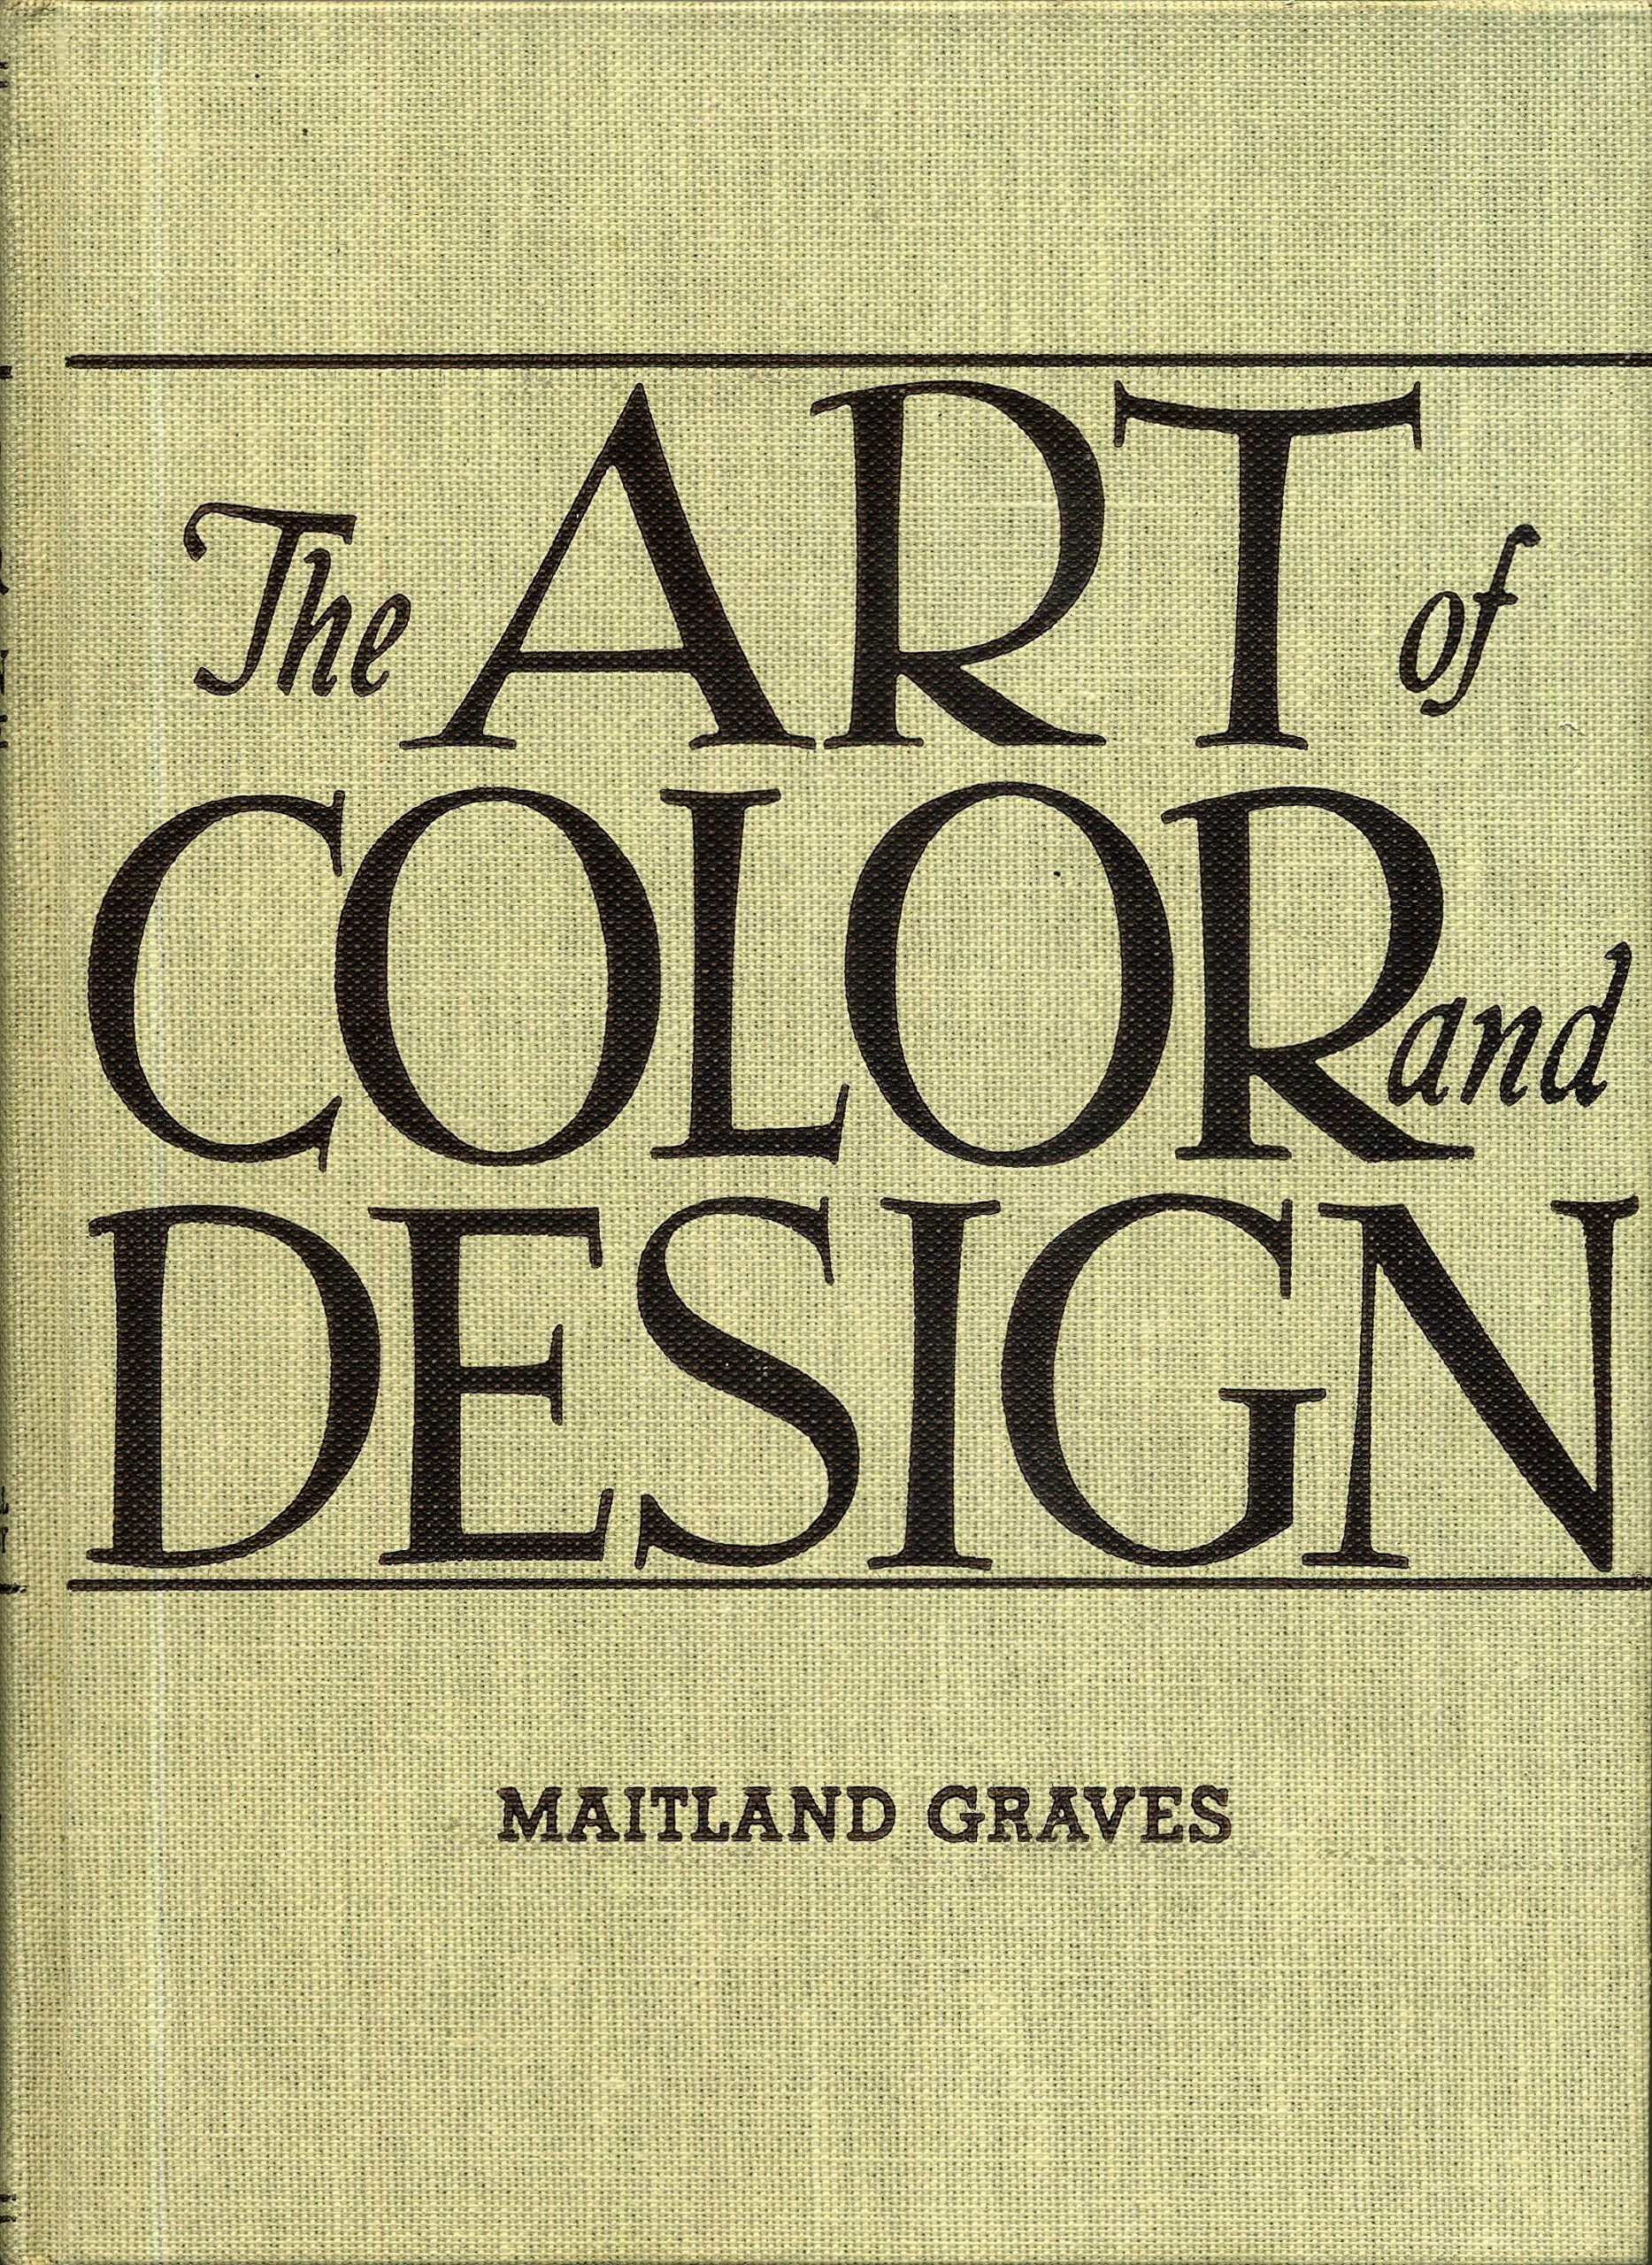 Space In Art And Design